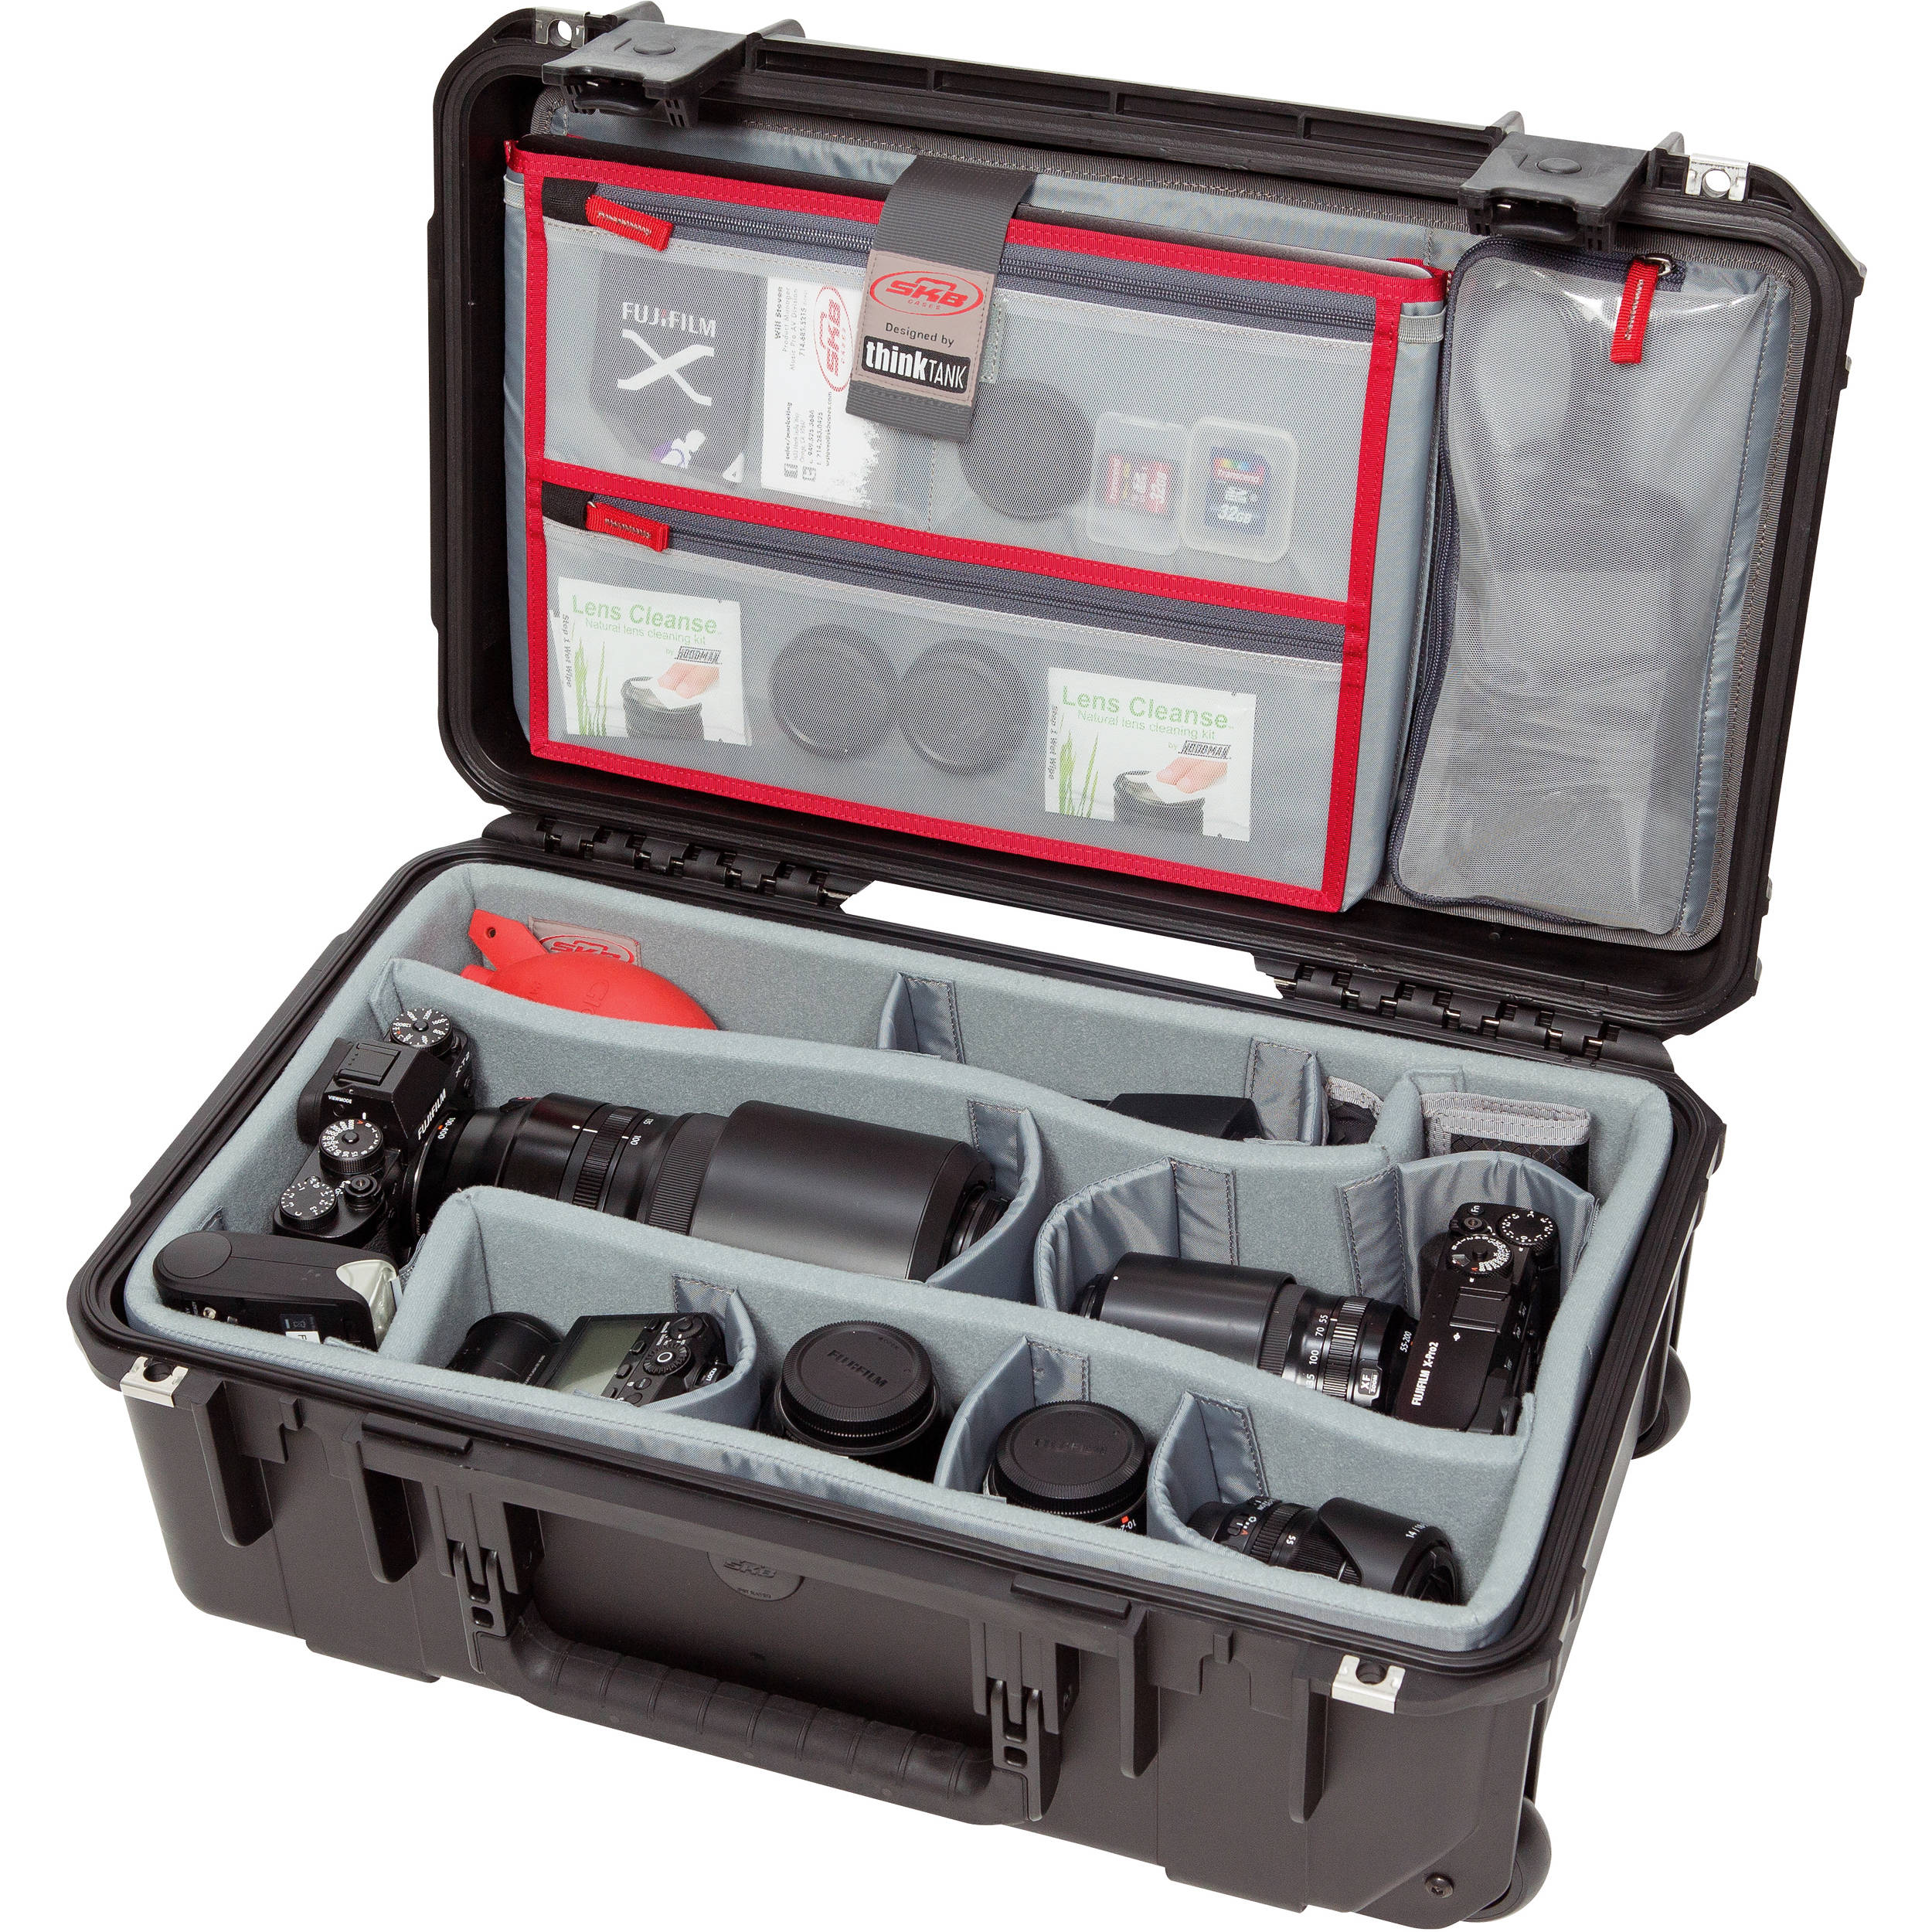 b8036638d28d SKB iSeries 2011-7 Case with Think Tank Photo Dividers & Lid Organizer  (Black)